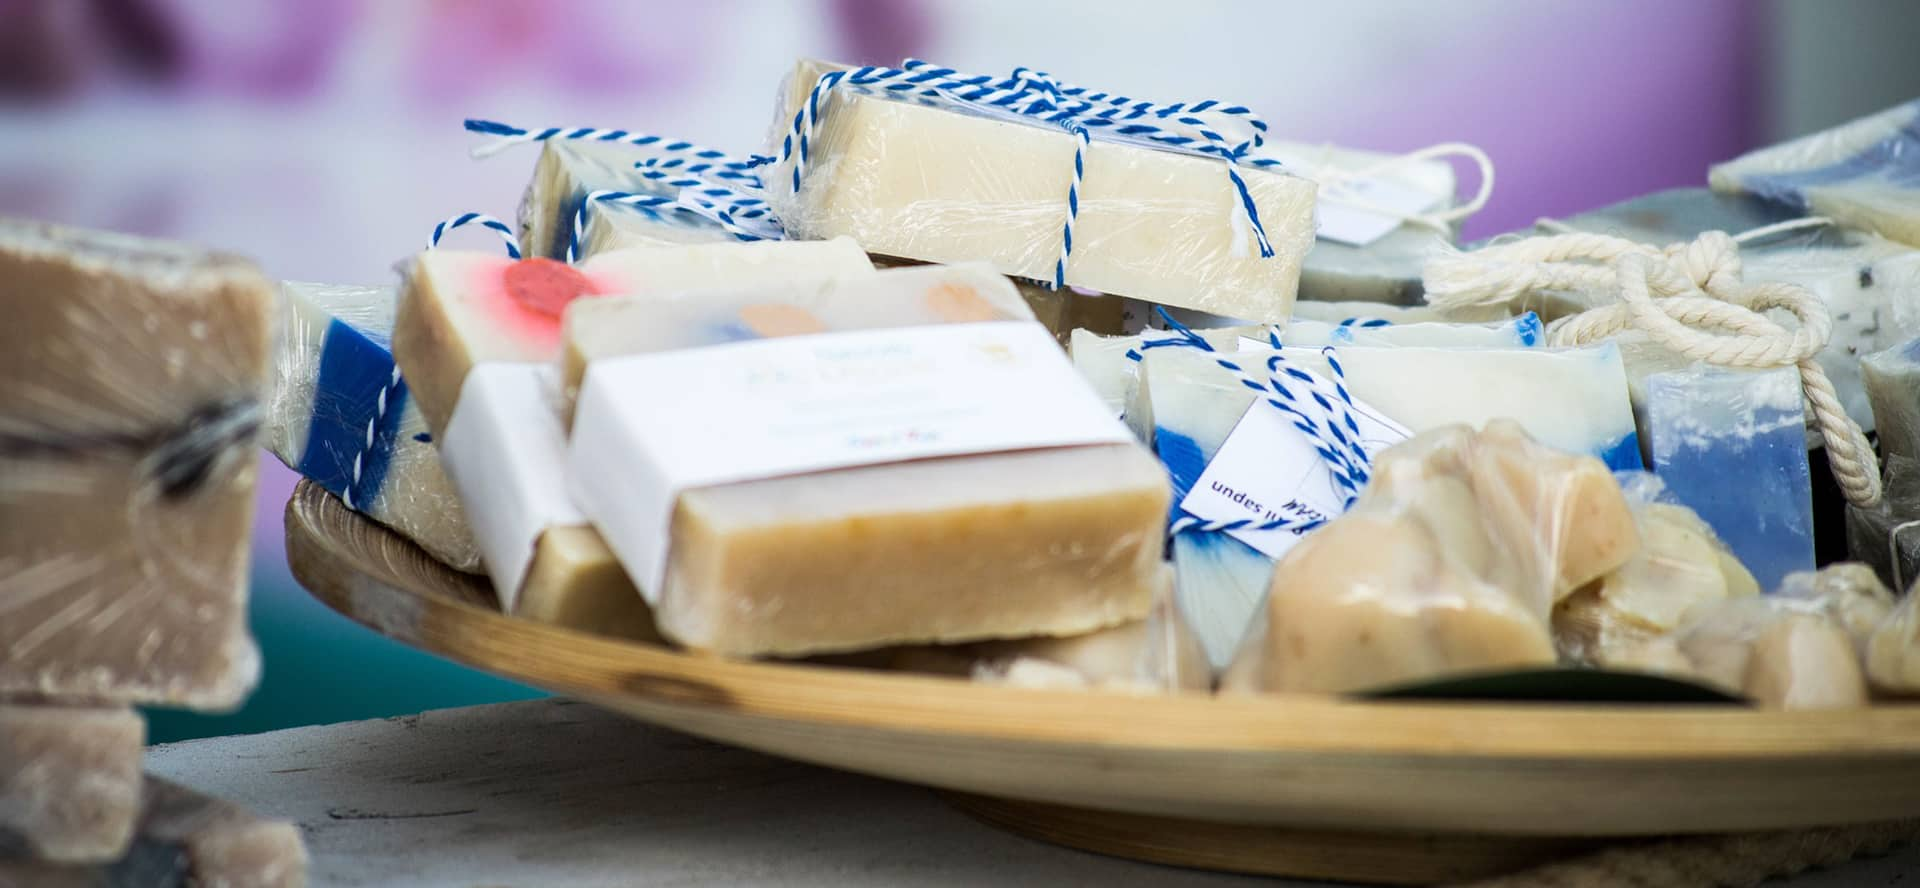 list of best bar soap brands around the World